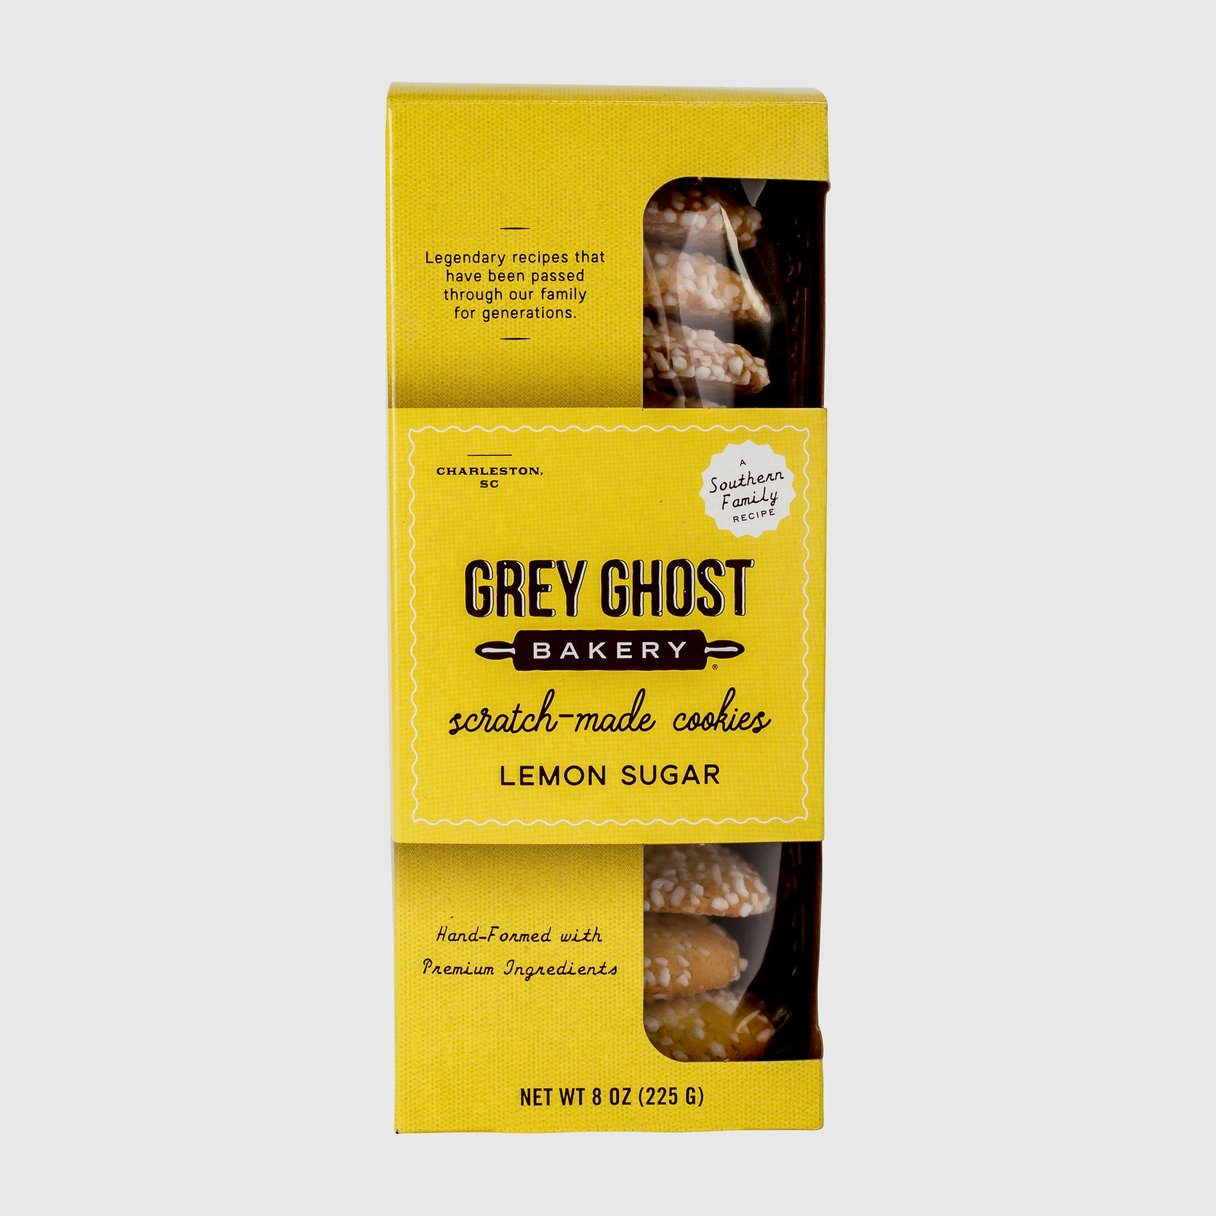 Grey Ghost Bakery Lemon Sugar Cookies